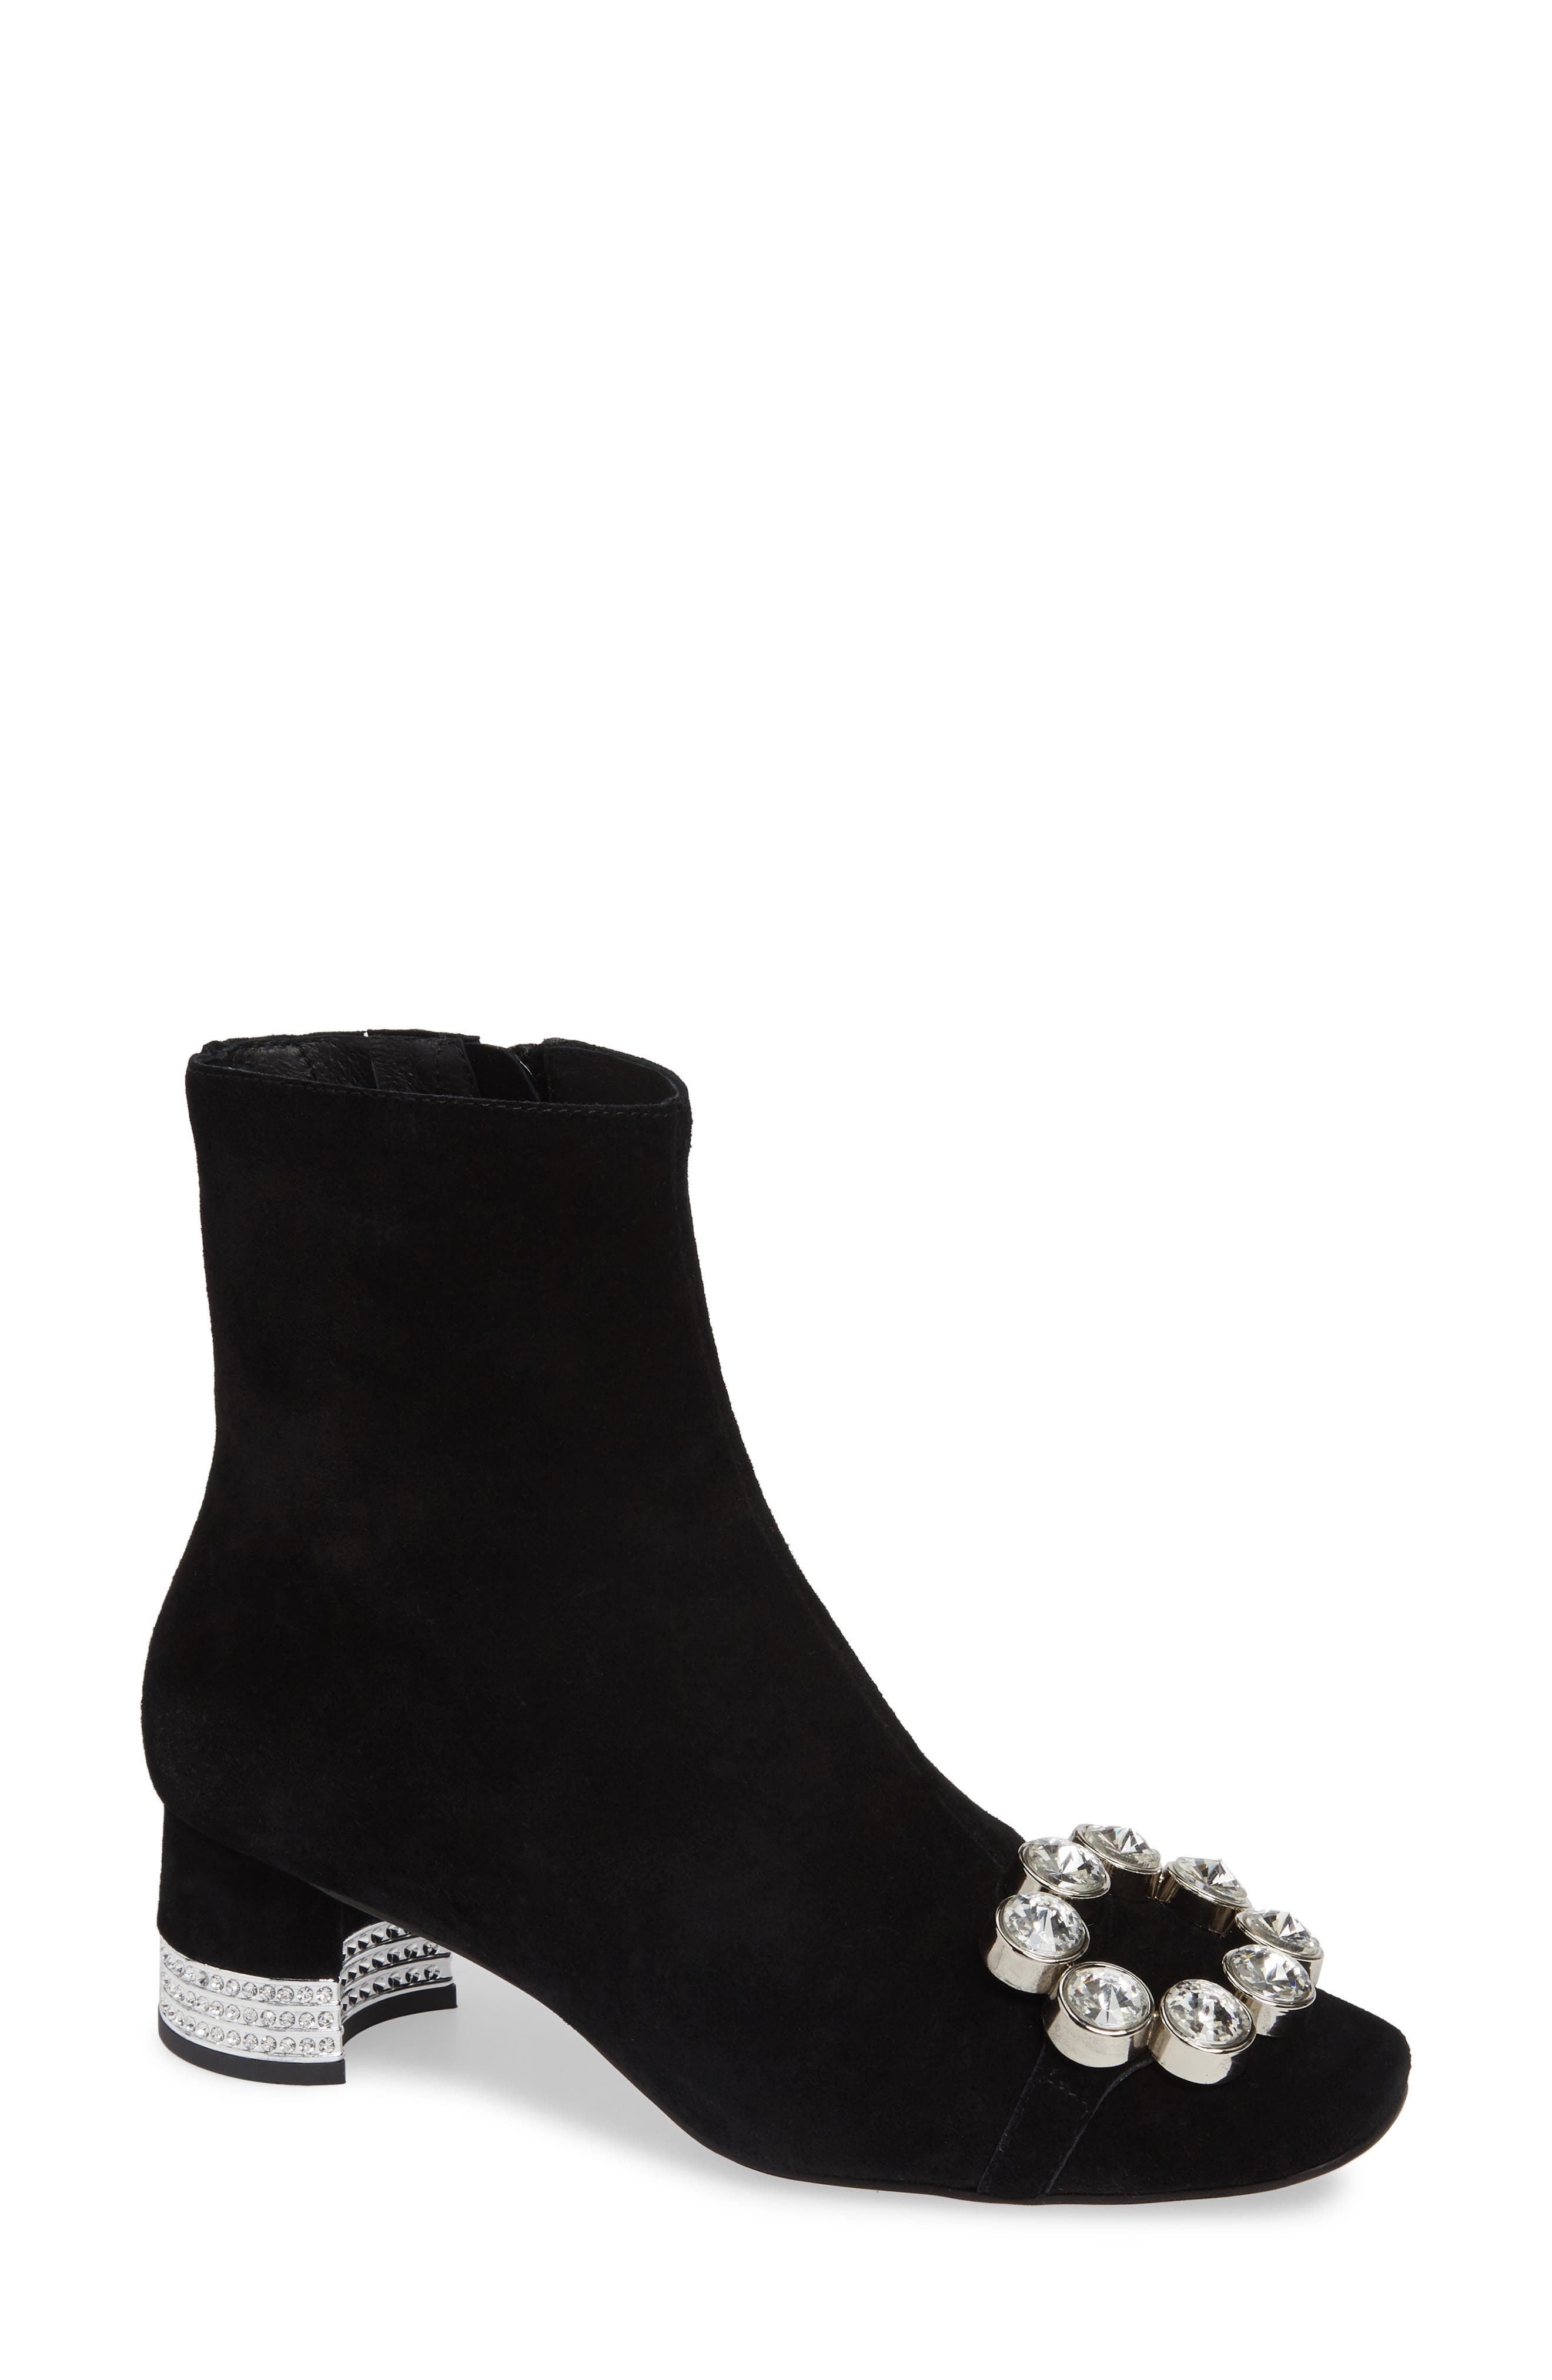 Sumatra Embellished Bootie,                             Main thumbnail 1, color,                             BLACK SUEDE